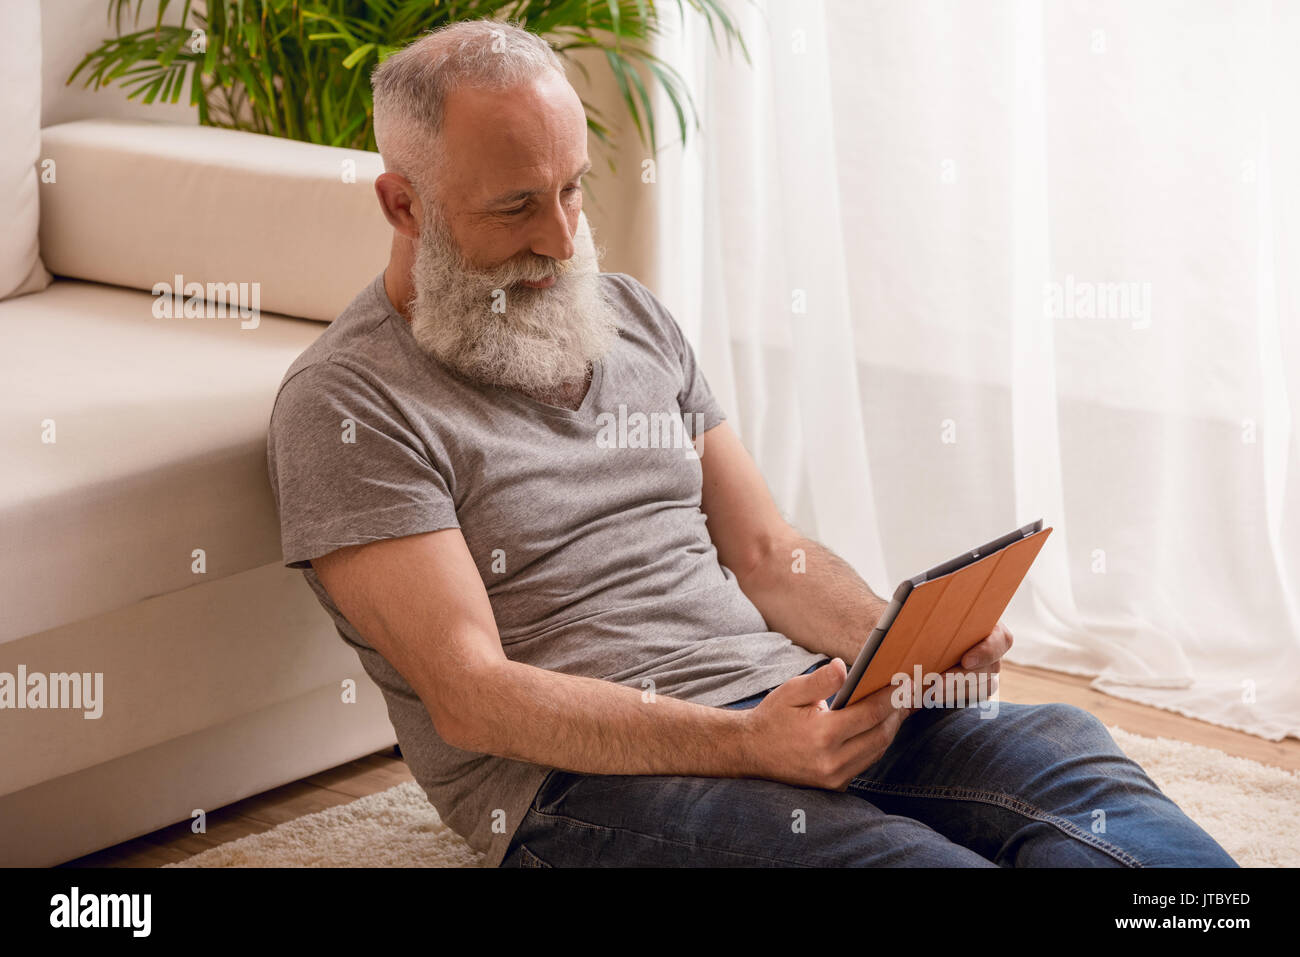 Homme barbu senior smiling and using digital tablet et assis sur le plancher à la maison Photo Stock